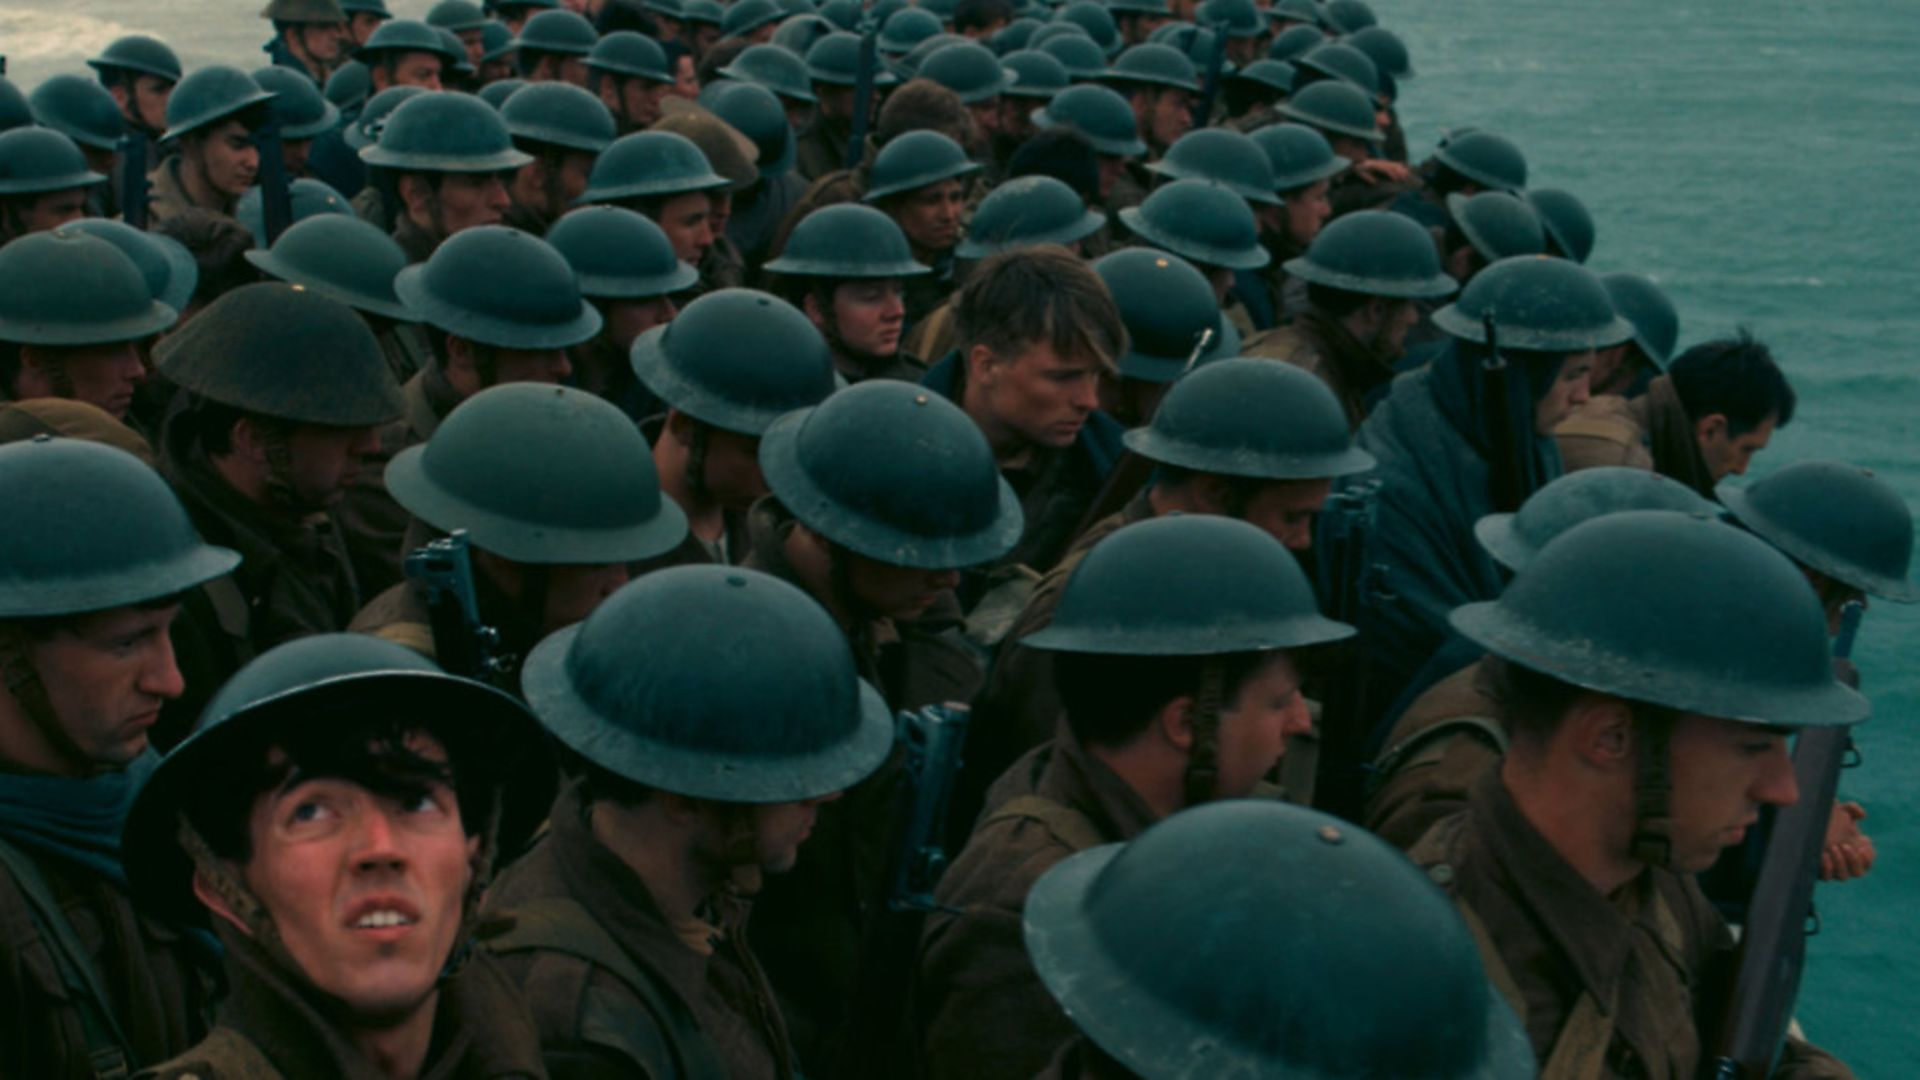 Dunkirk, Christopher Nolan, 2017 - Credit: Cover Images